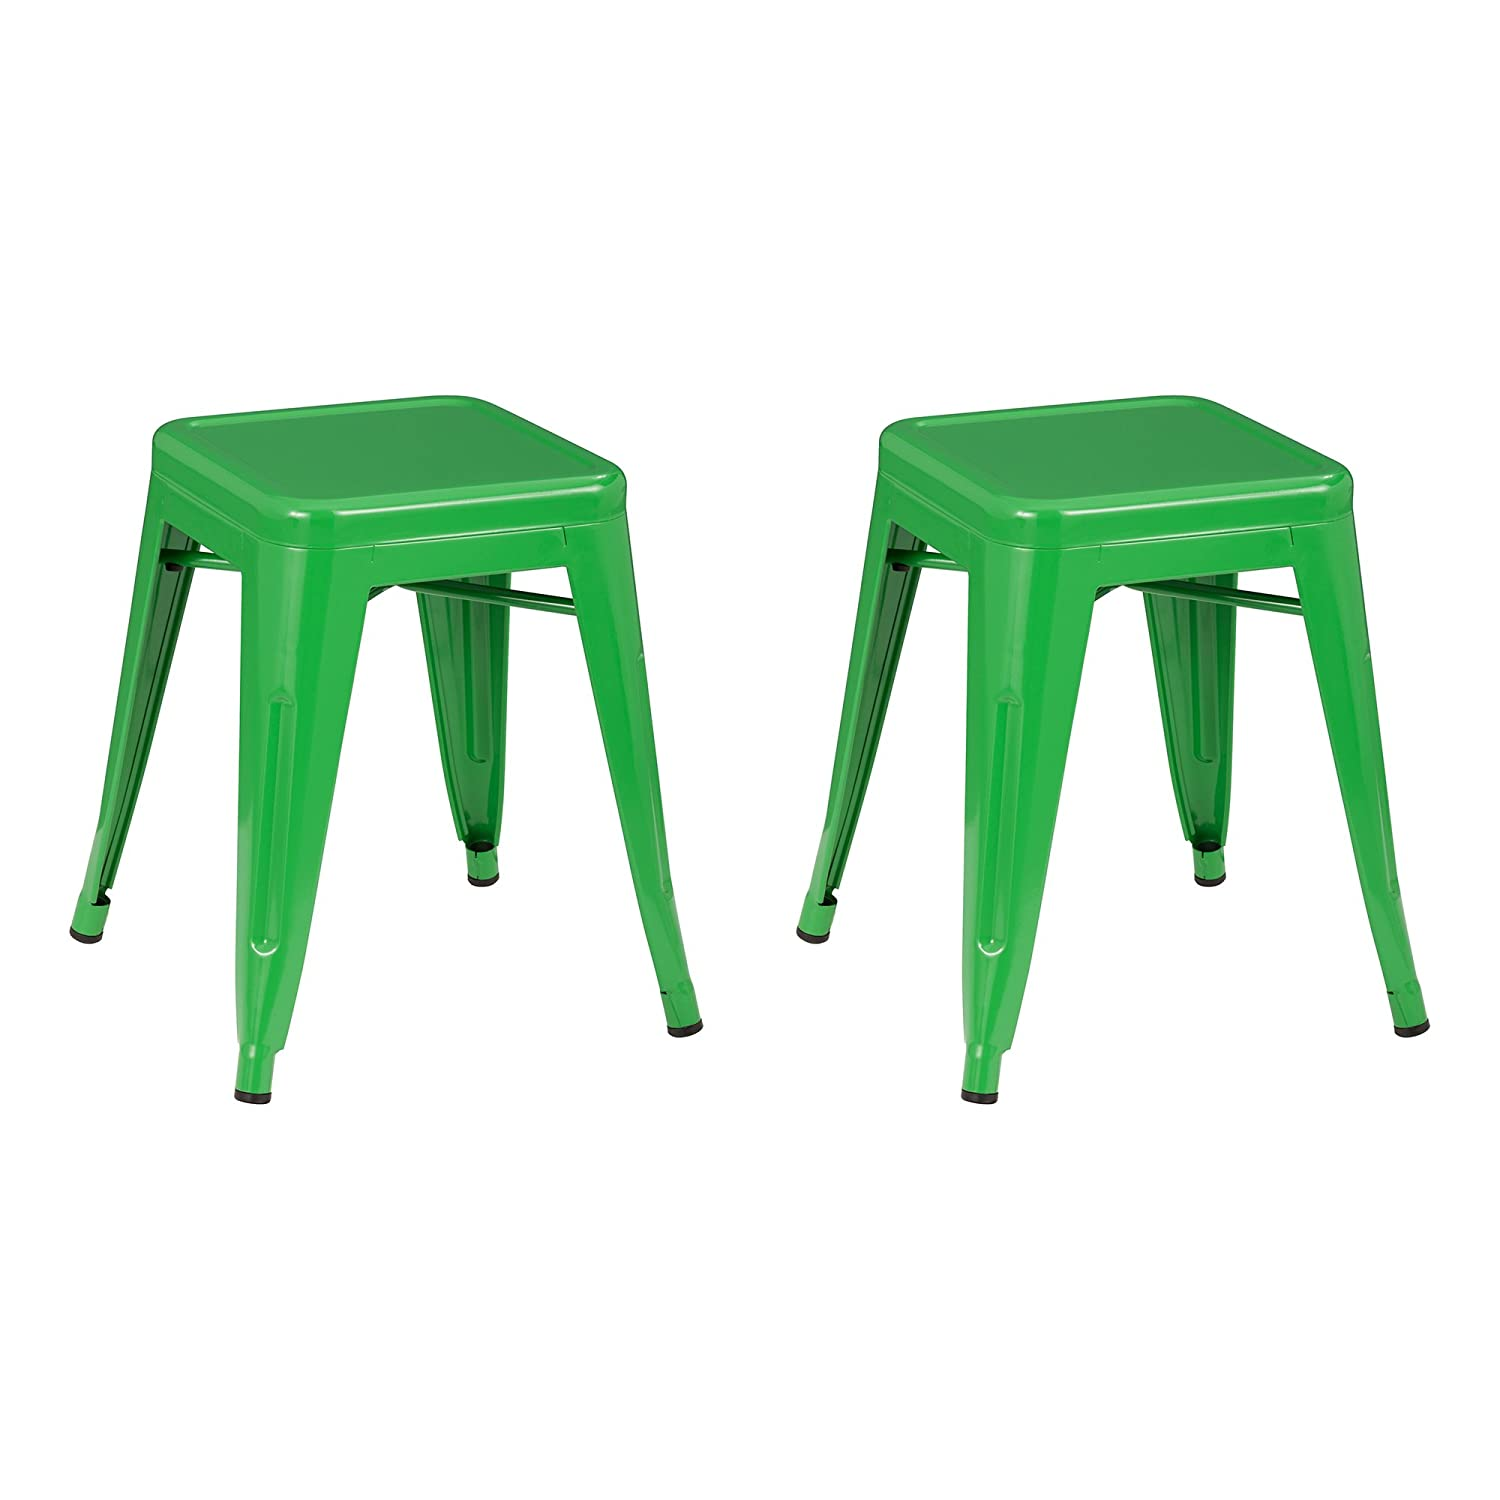 Enjoyable Norwood Commercial Furniture Metal Stack Stool 18 Seat Height Green Nor Xuw3021Gn So Pack Of 2 Onthecornerstone Fun Painted Chair Ideas Images Onthecornerstoneorg